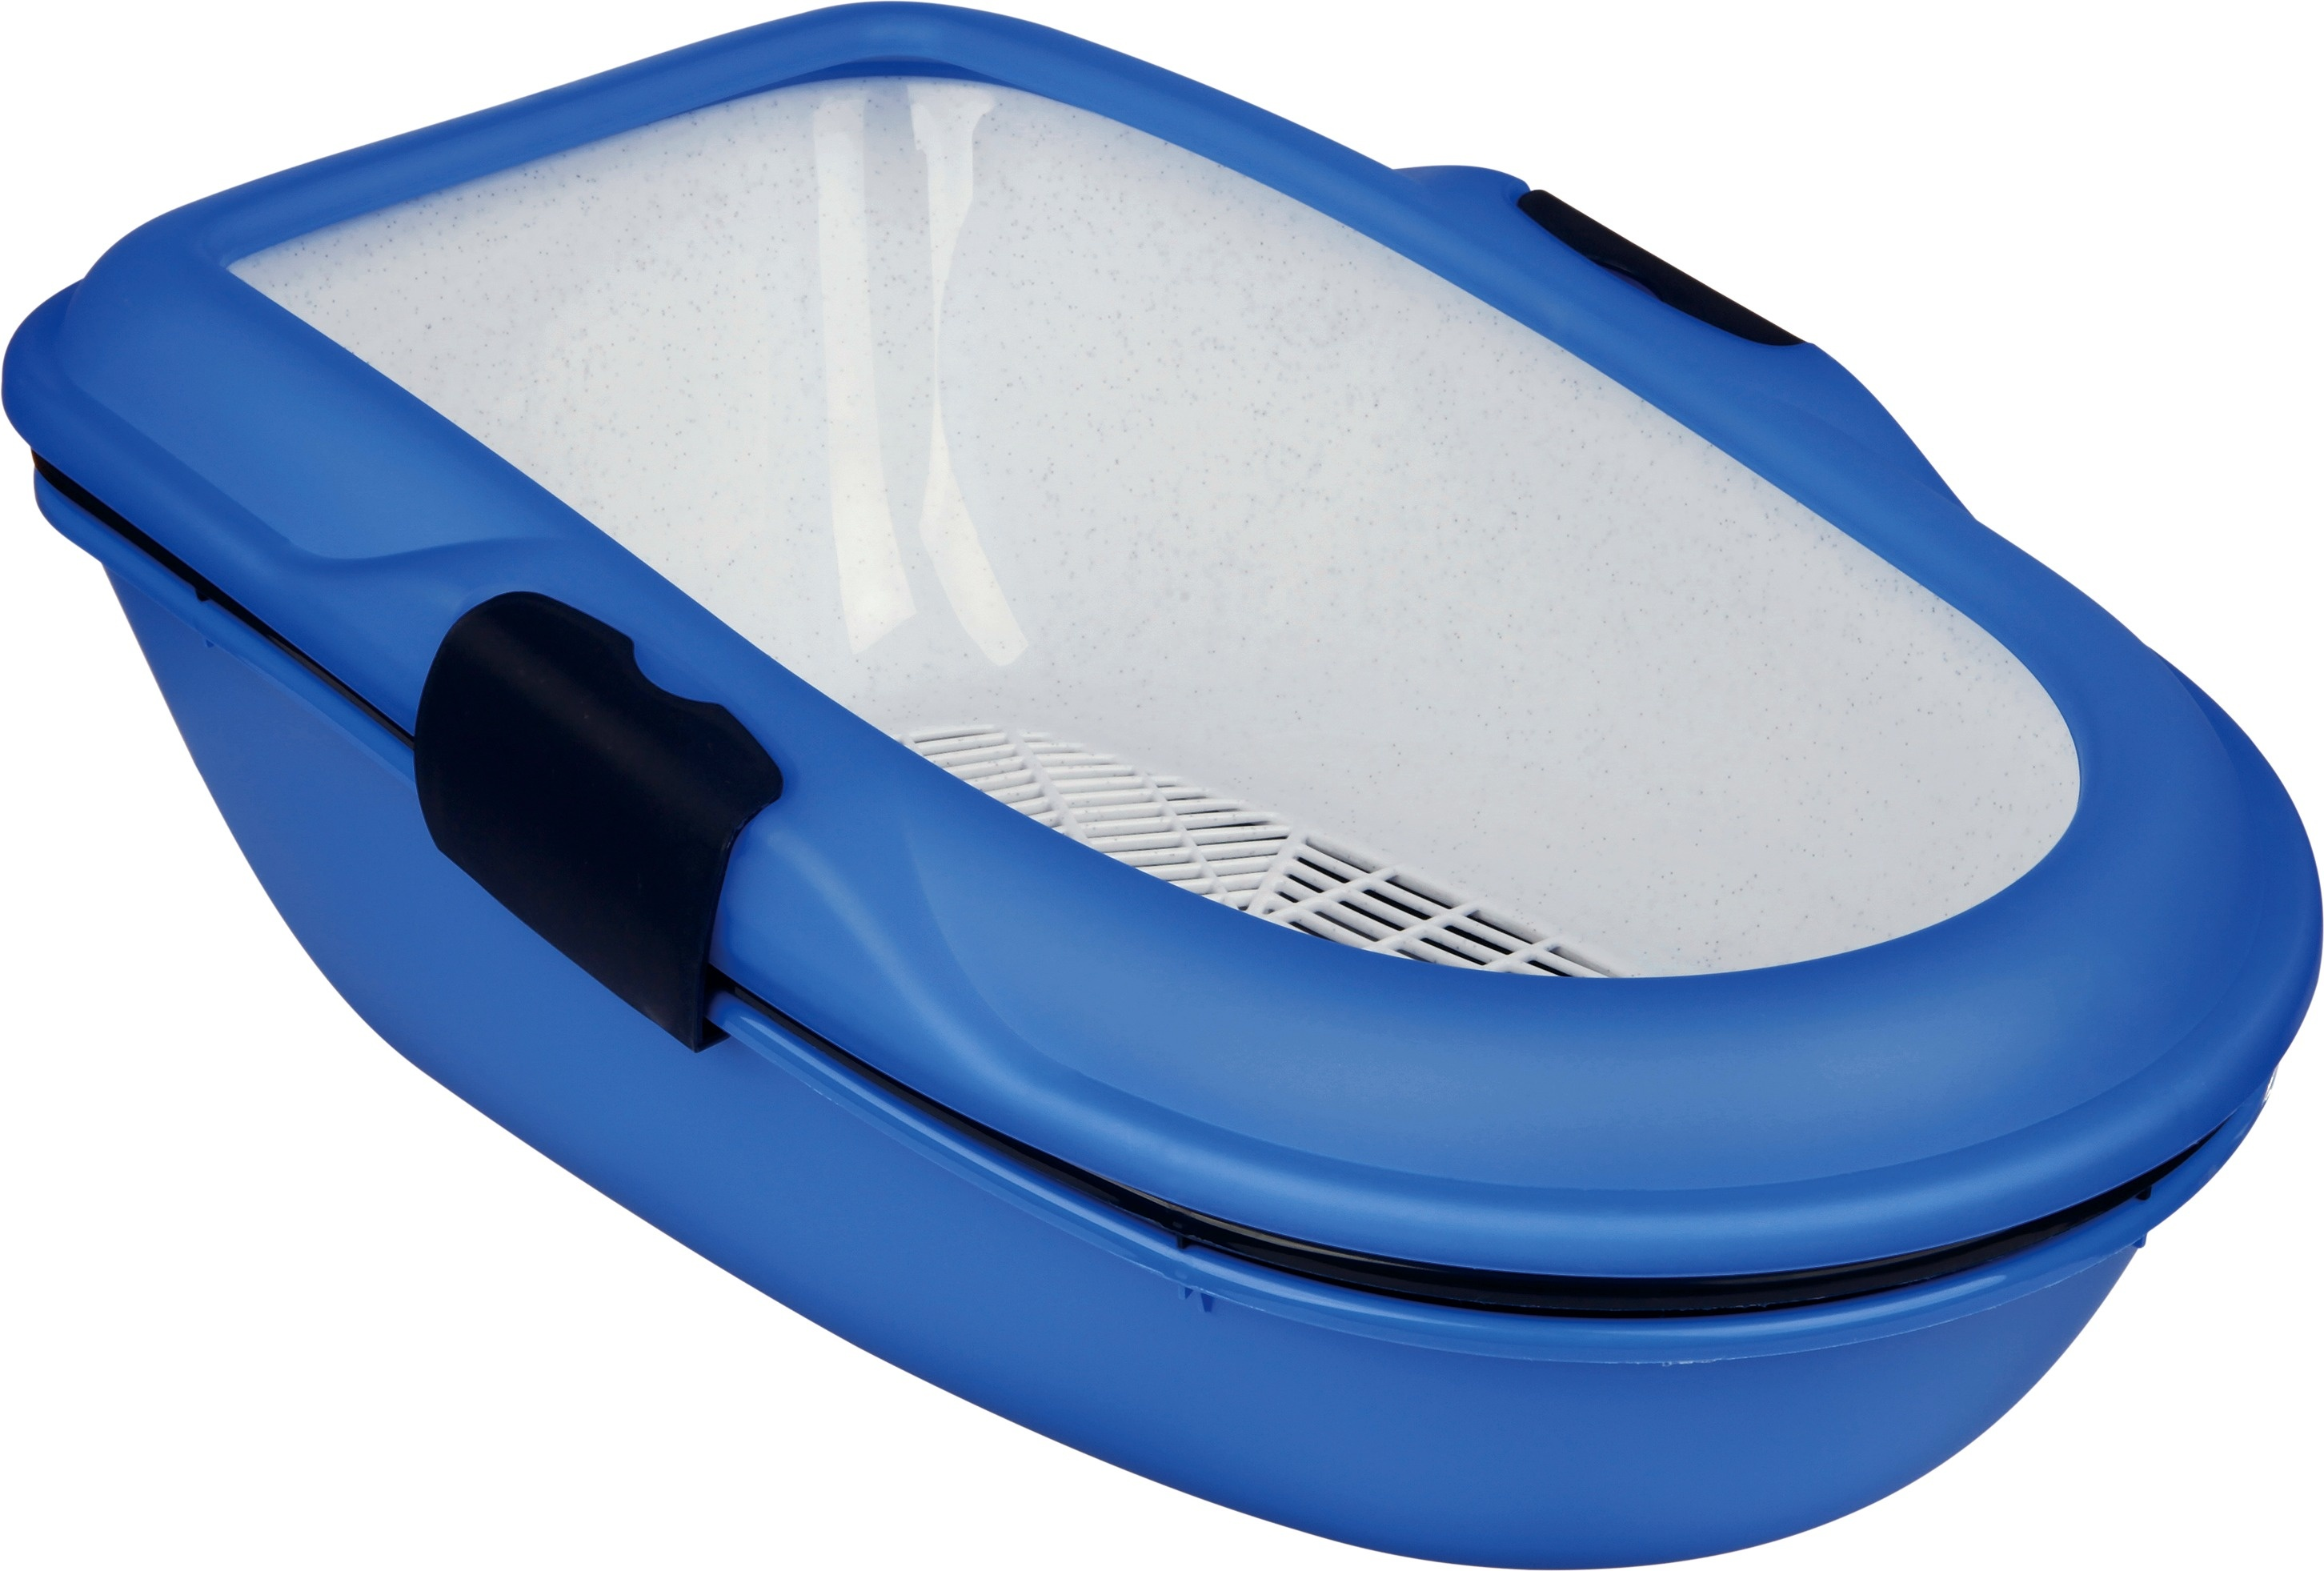 Berto Cat Litter Tray - Blue/black